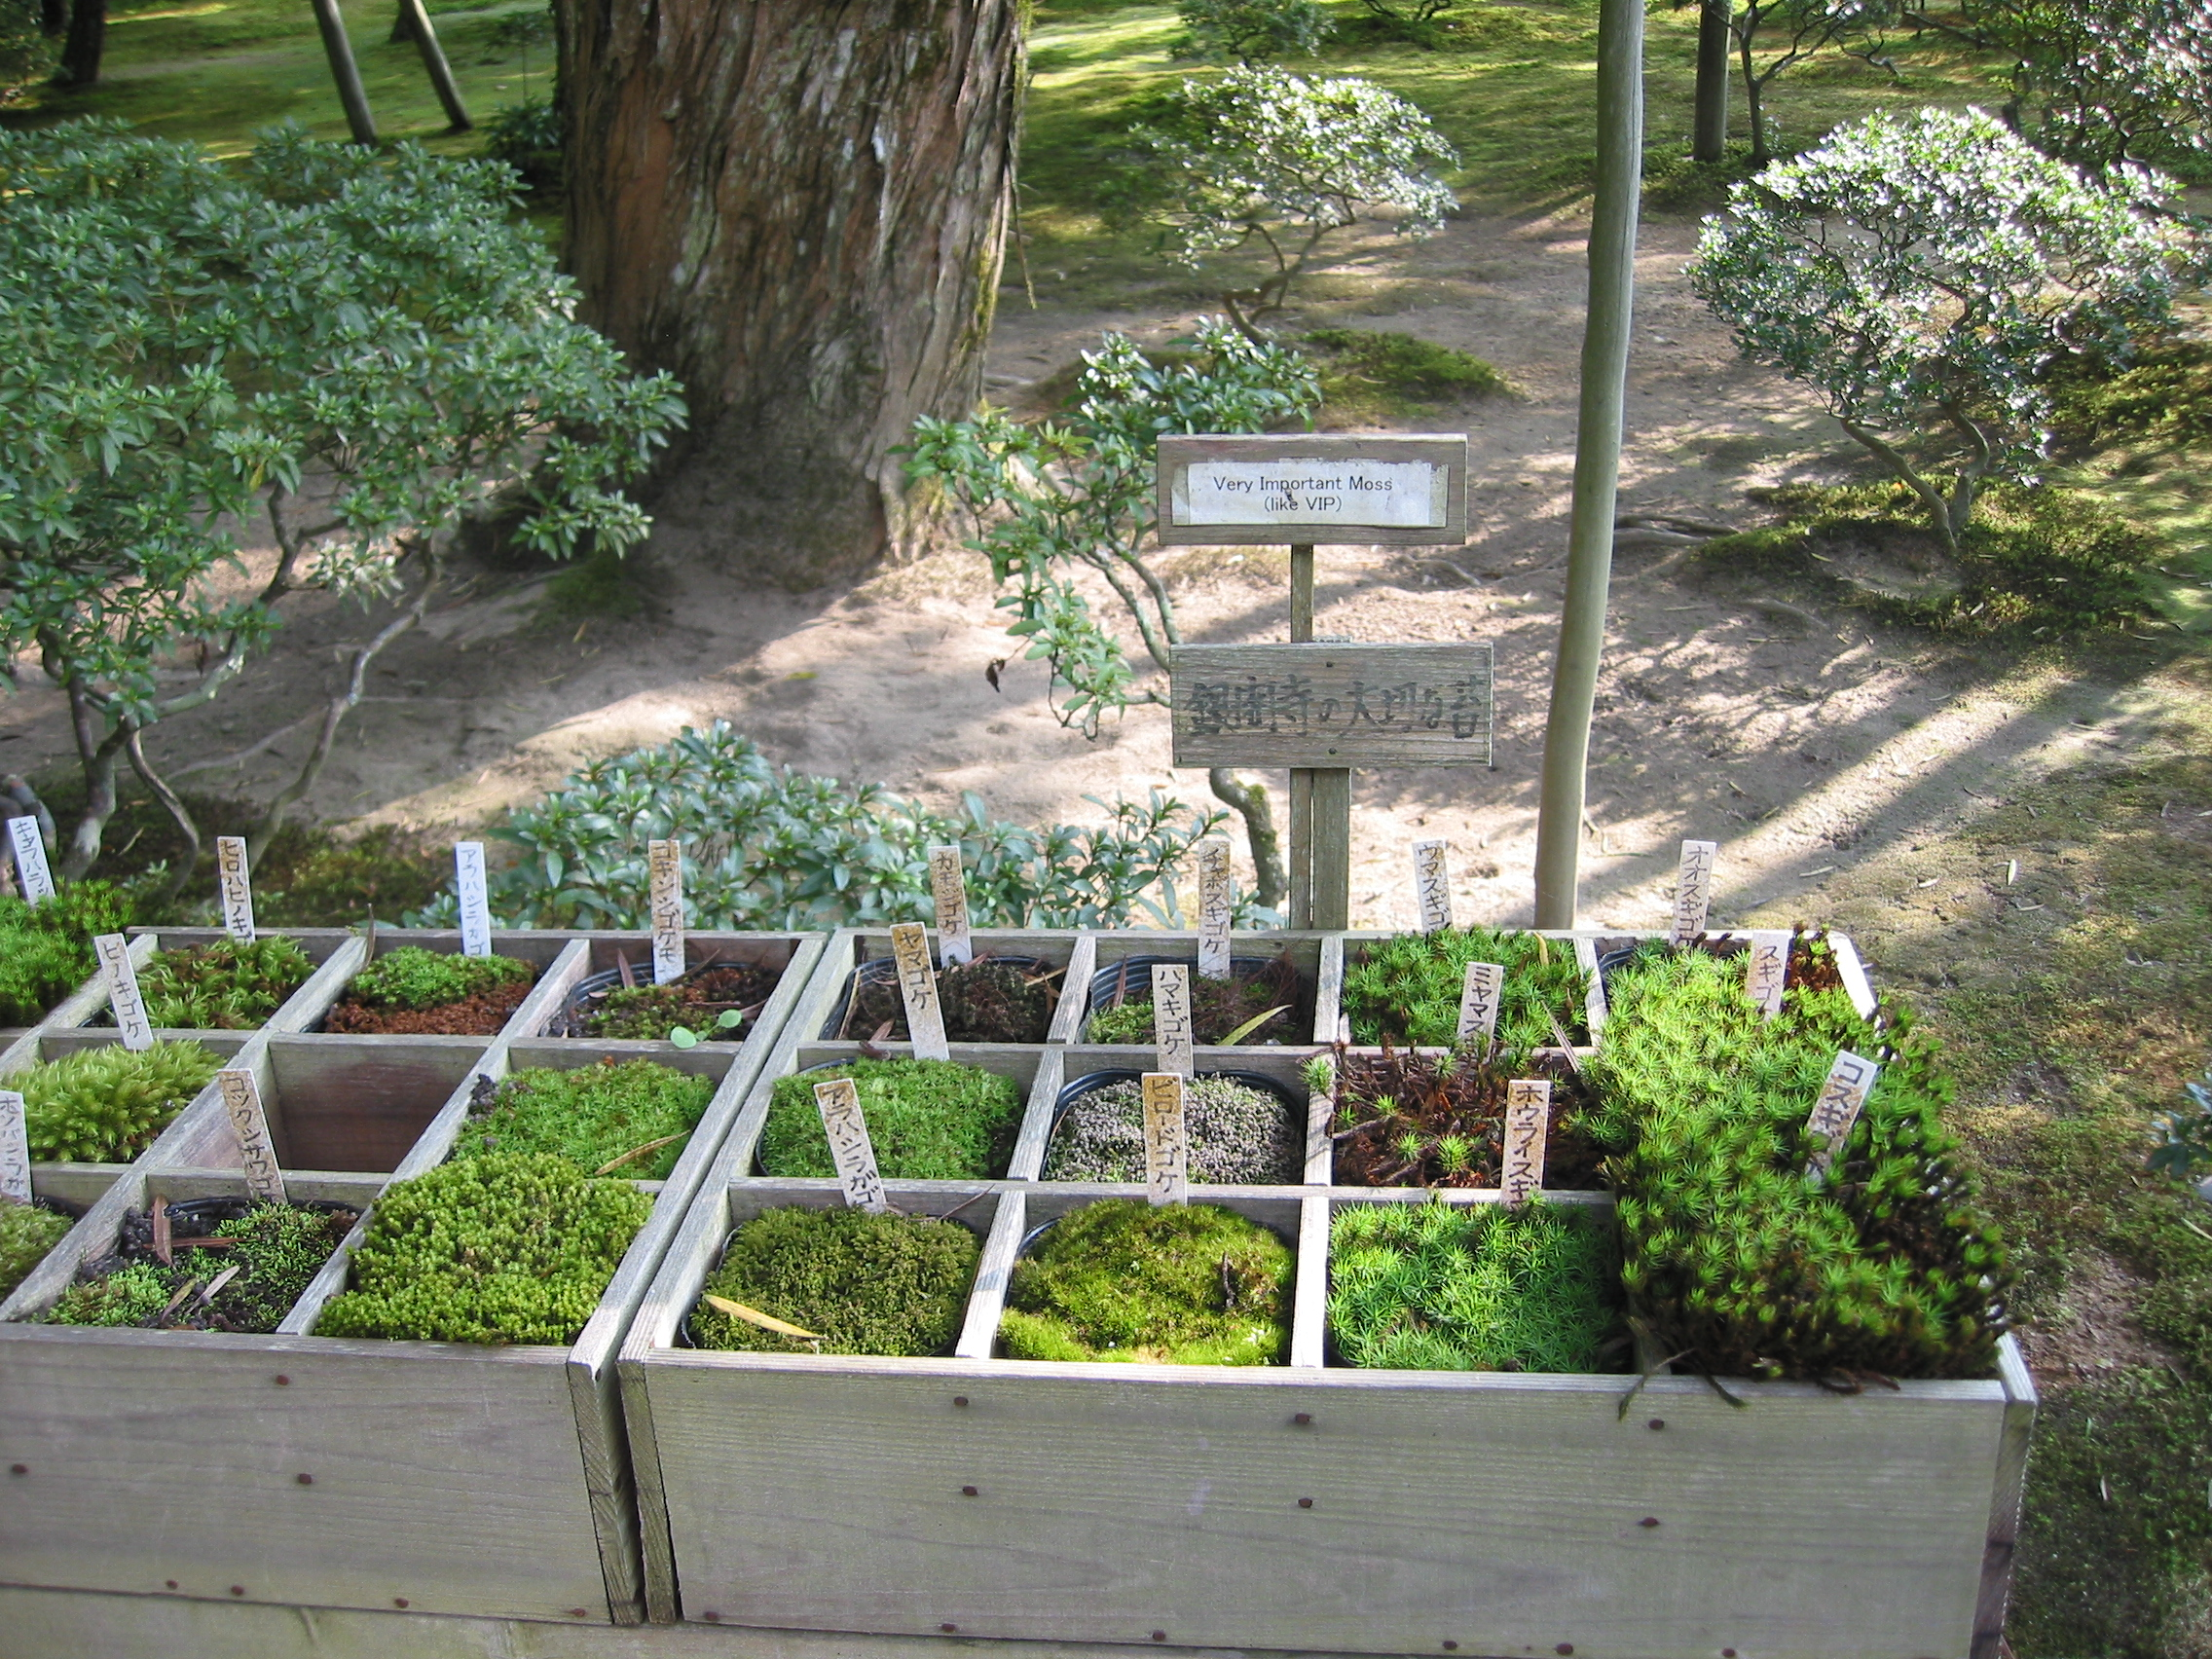 File:Moss Types At The Ginkakuji Garden, Kyoto, Japan